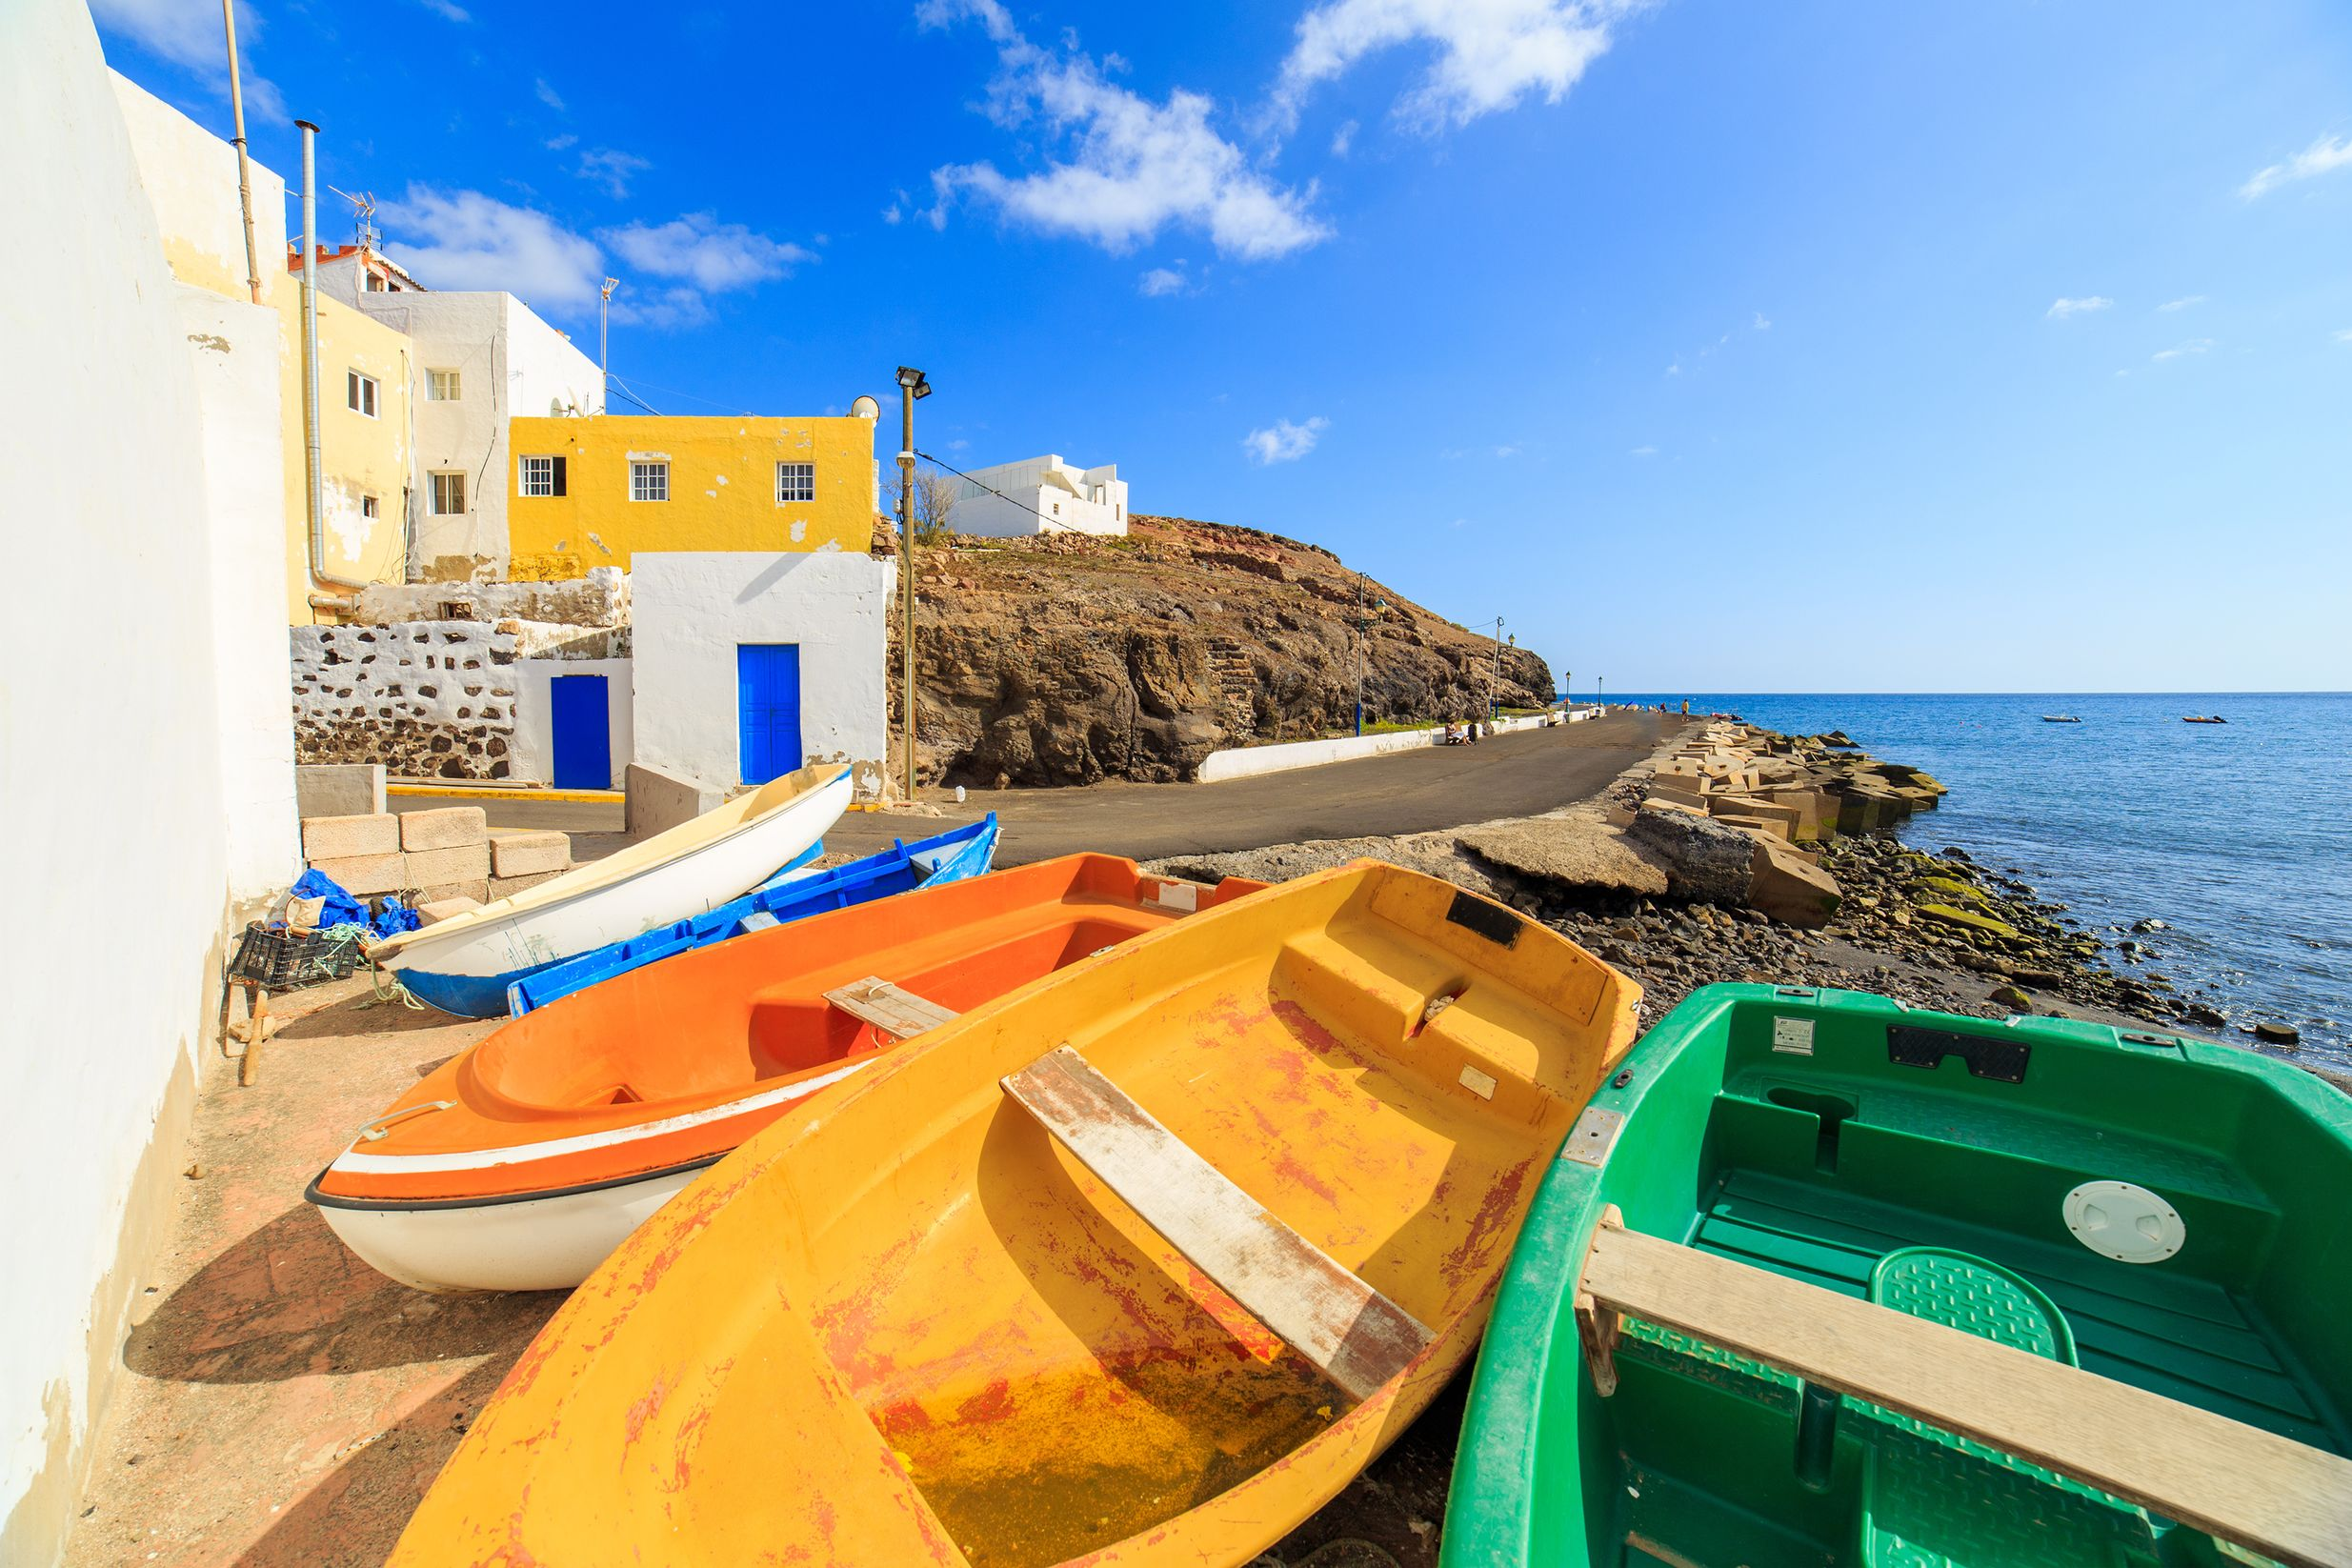 Colourful wooden fishing boats in a small port on the beach in Fuerteventura